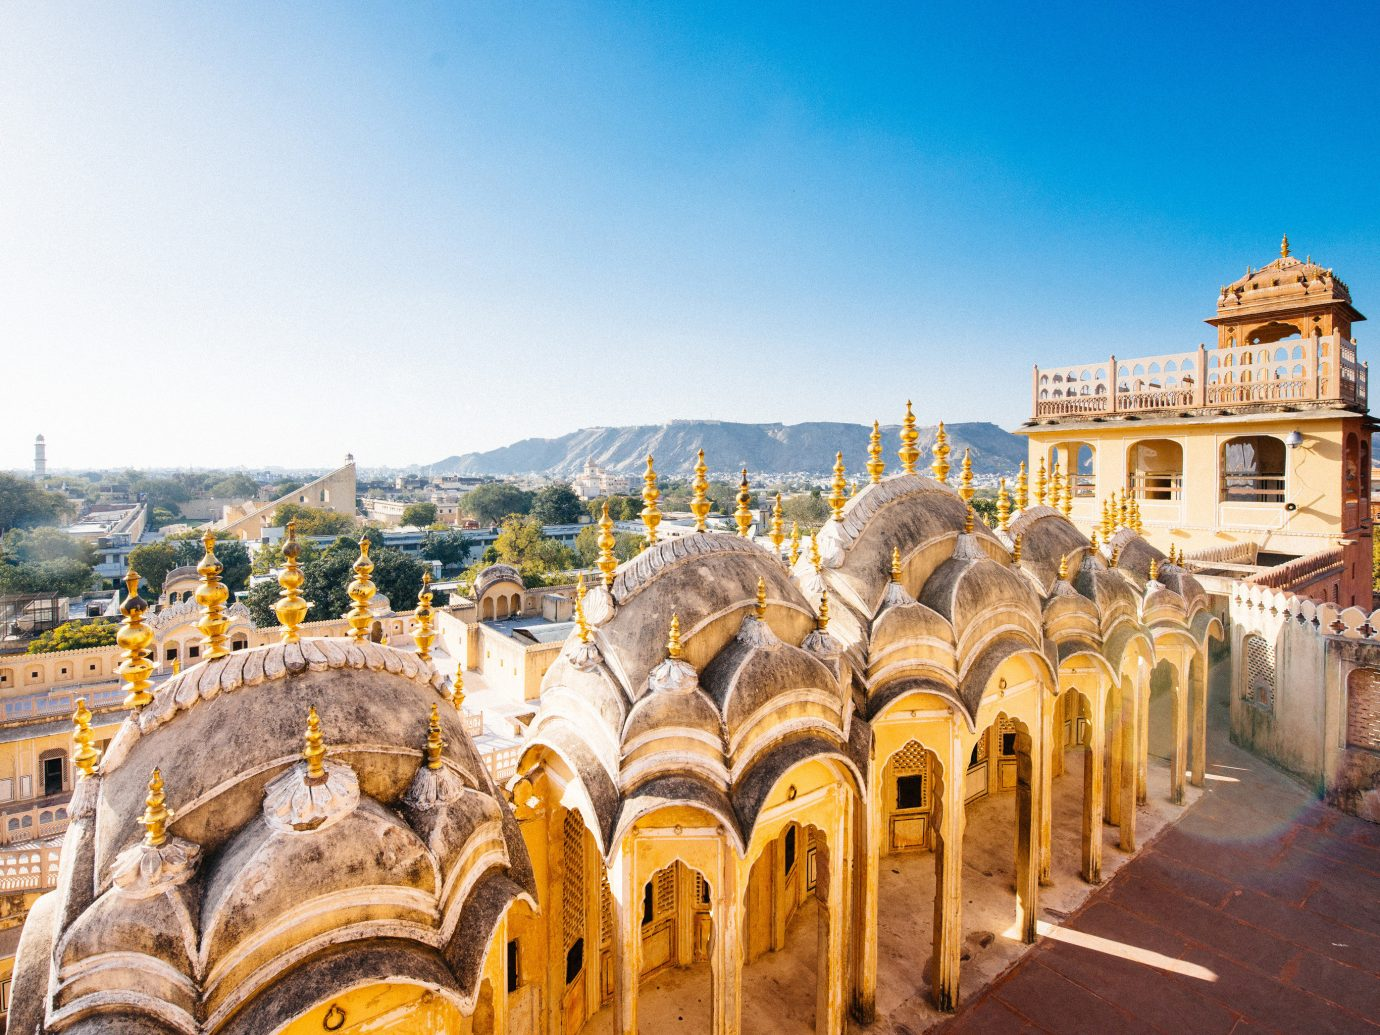 India Jaipur Jodhpur Trip Ideas sky landmark historic site ancient history tourist attraction tourism City building byzantine architecture history basilica facade arch place of worship cathedral